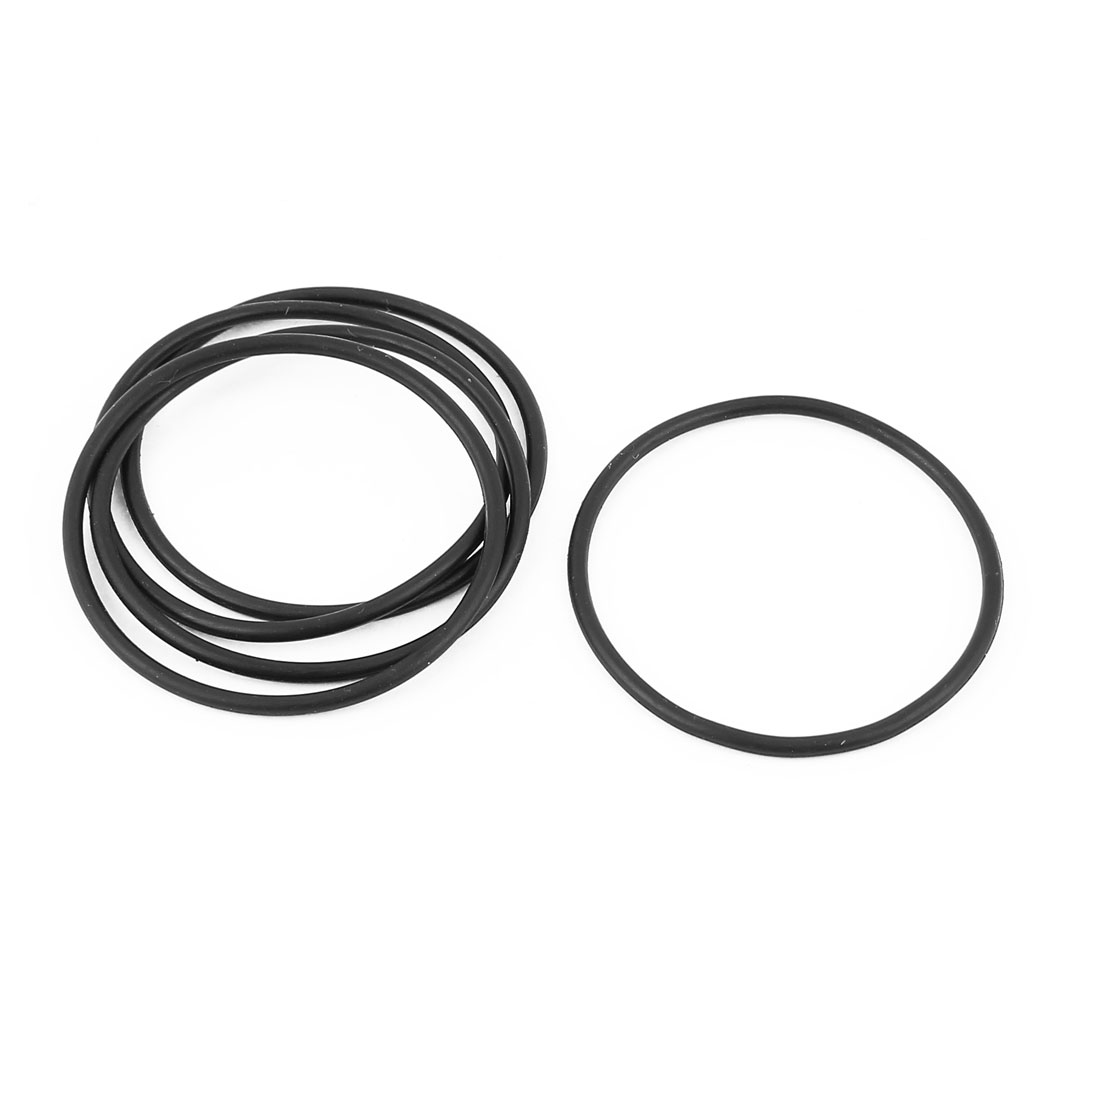 5 Pcs 46mm x 50mm x 2mm Rubber O Type Sealing Ring Gasket